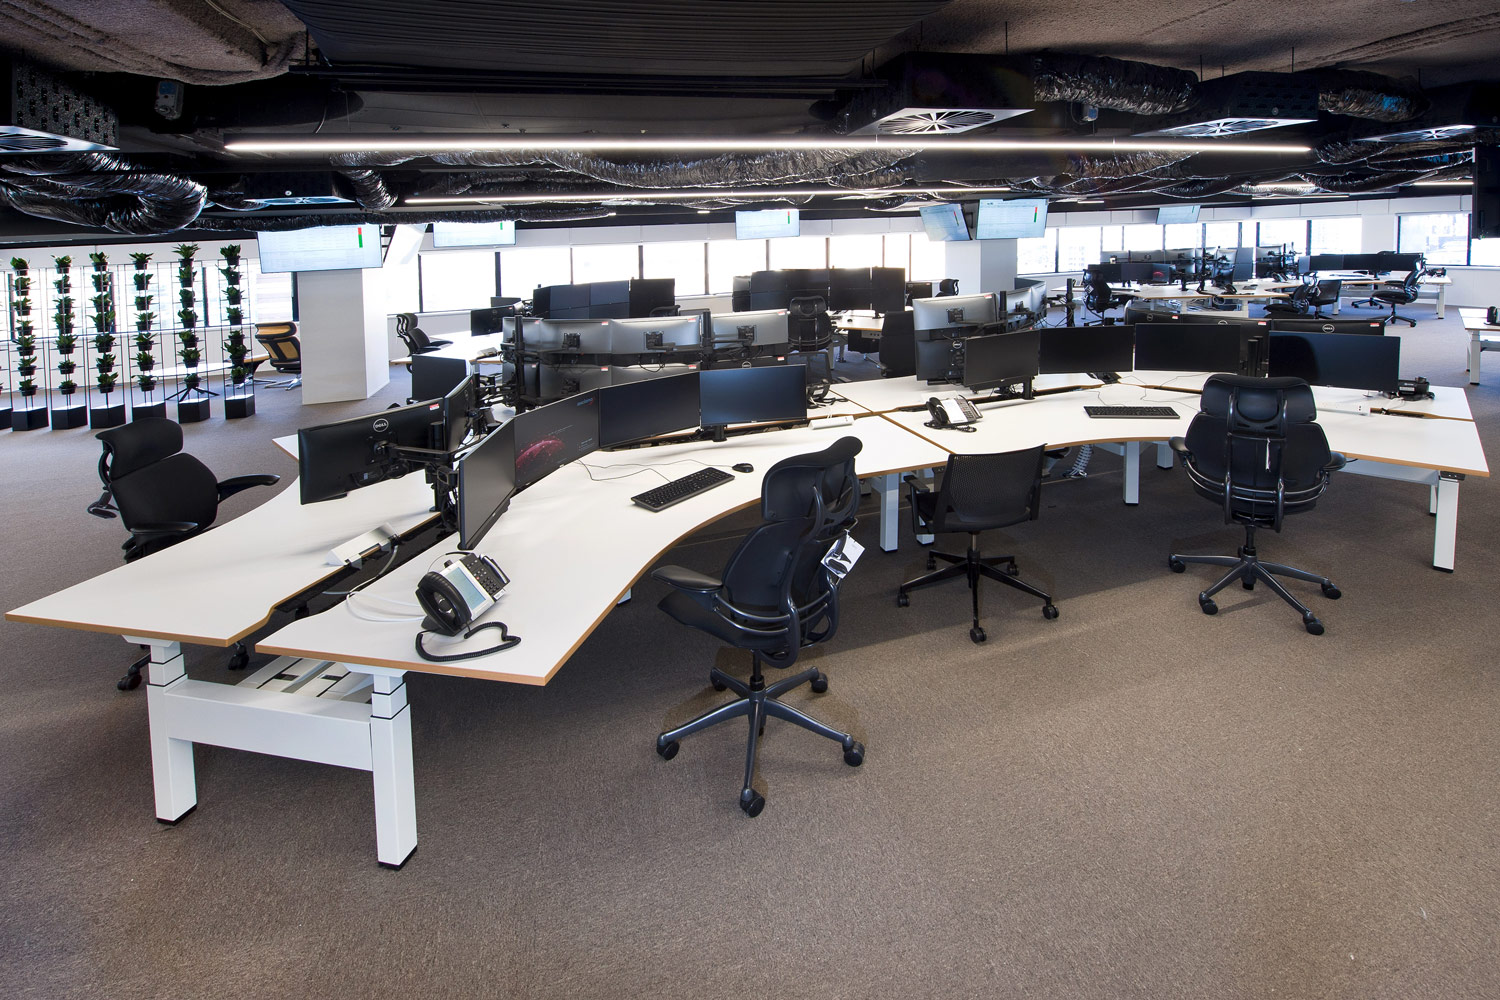 Actif three-stage, electric height-adjustable 120 degree workstations in a cluster